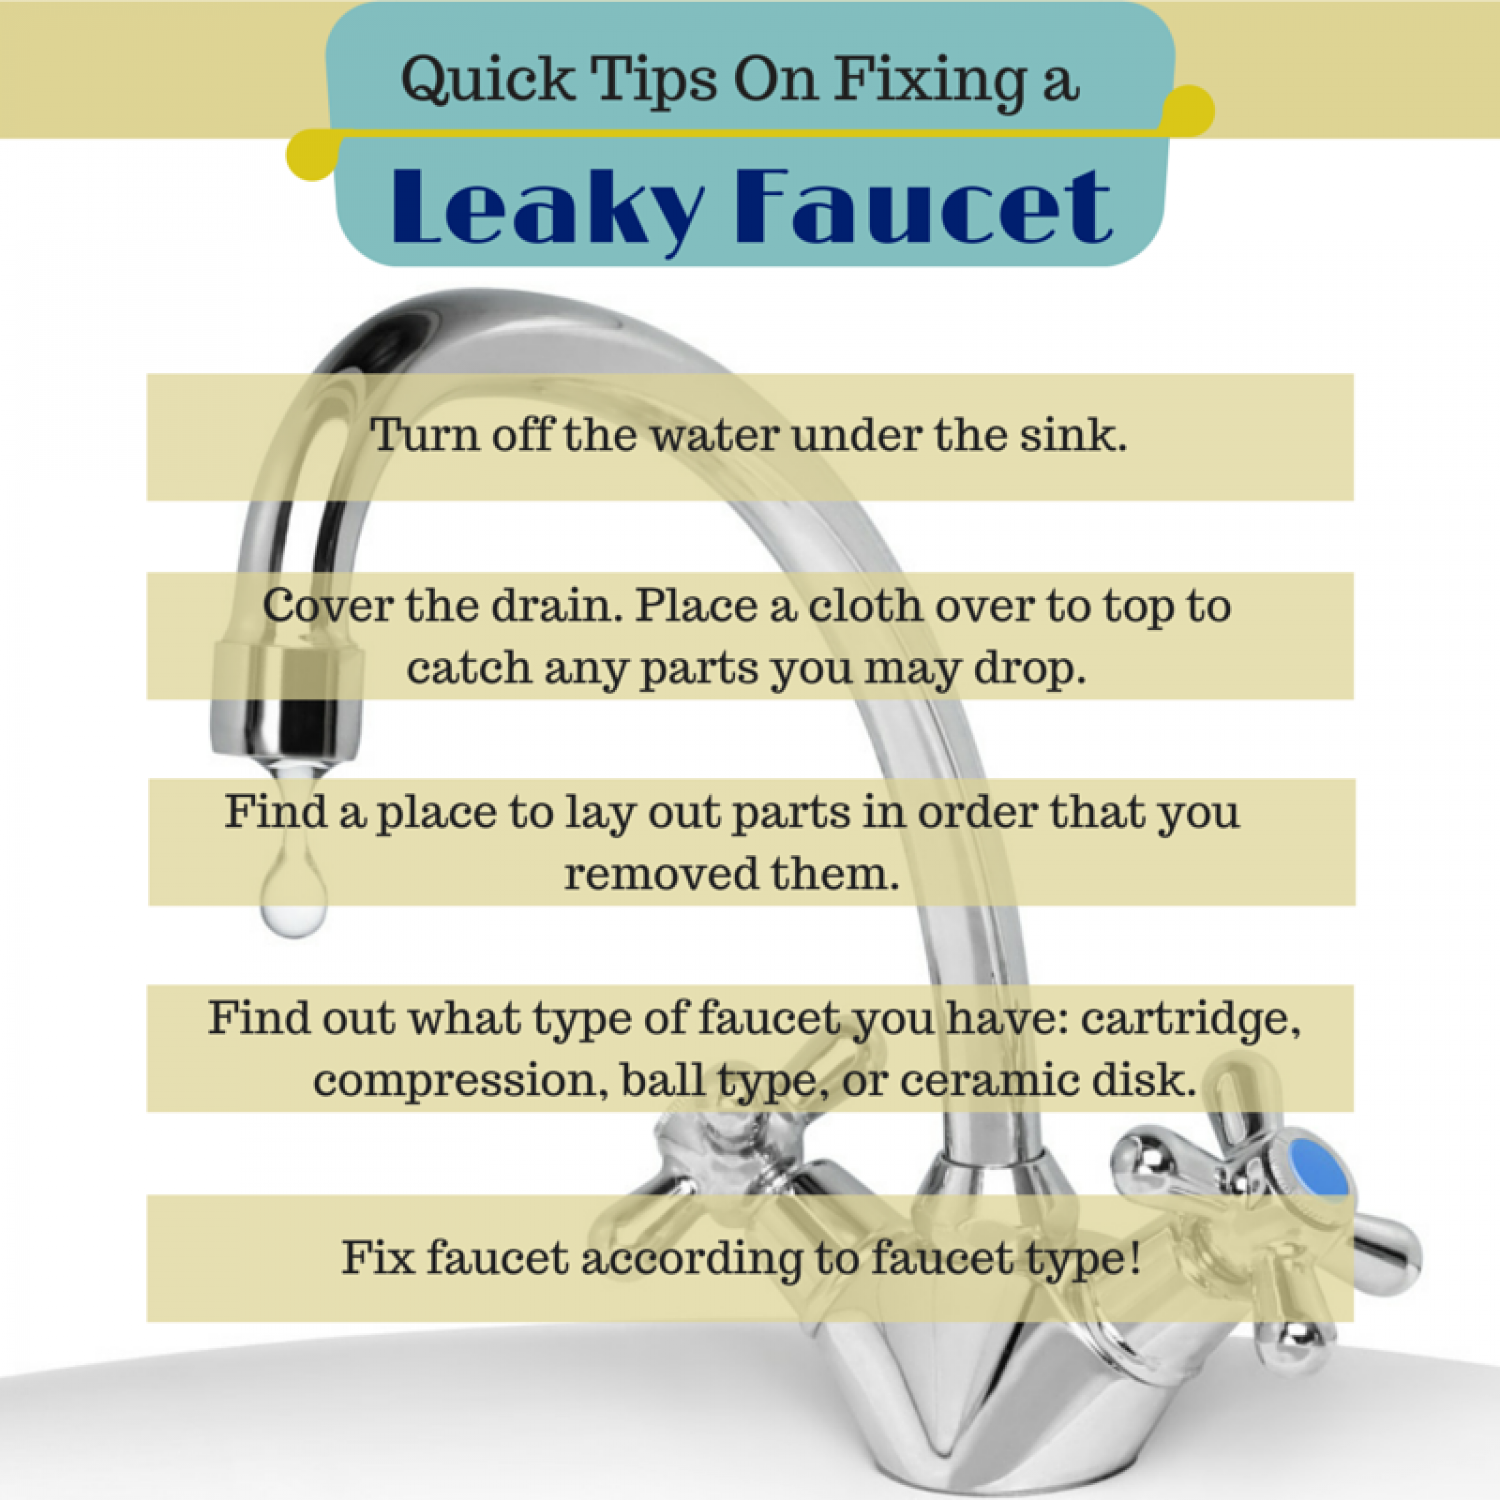 Tips to fix a leaky faucet